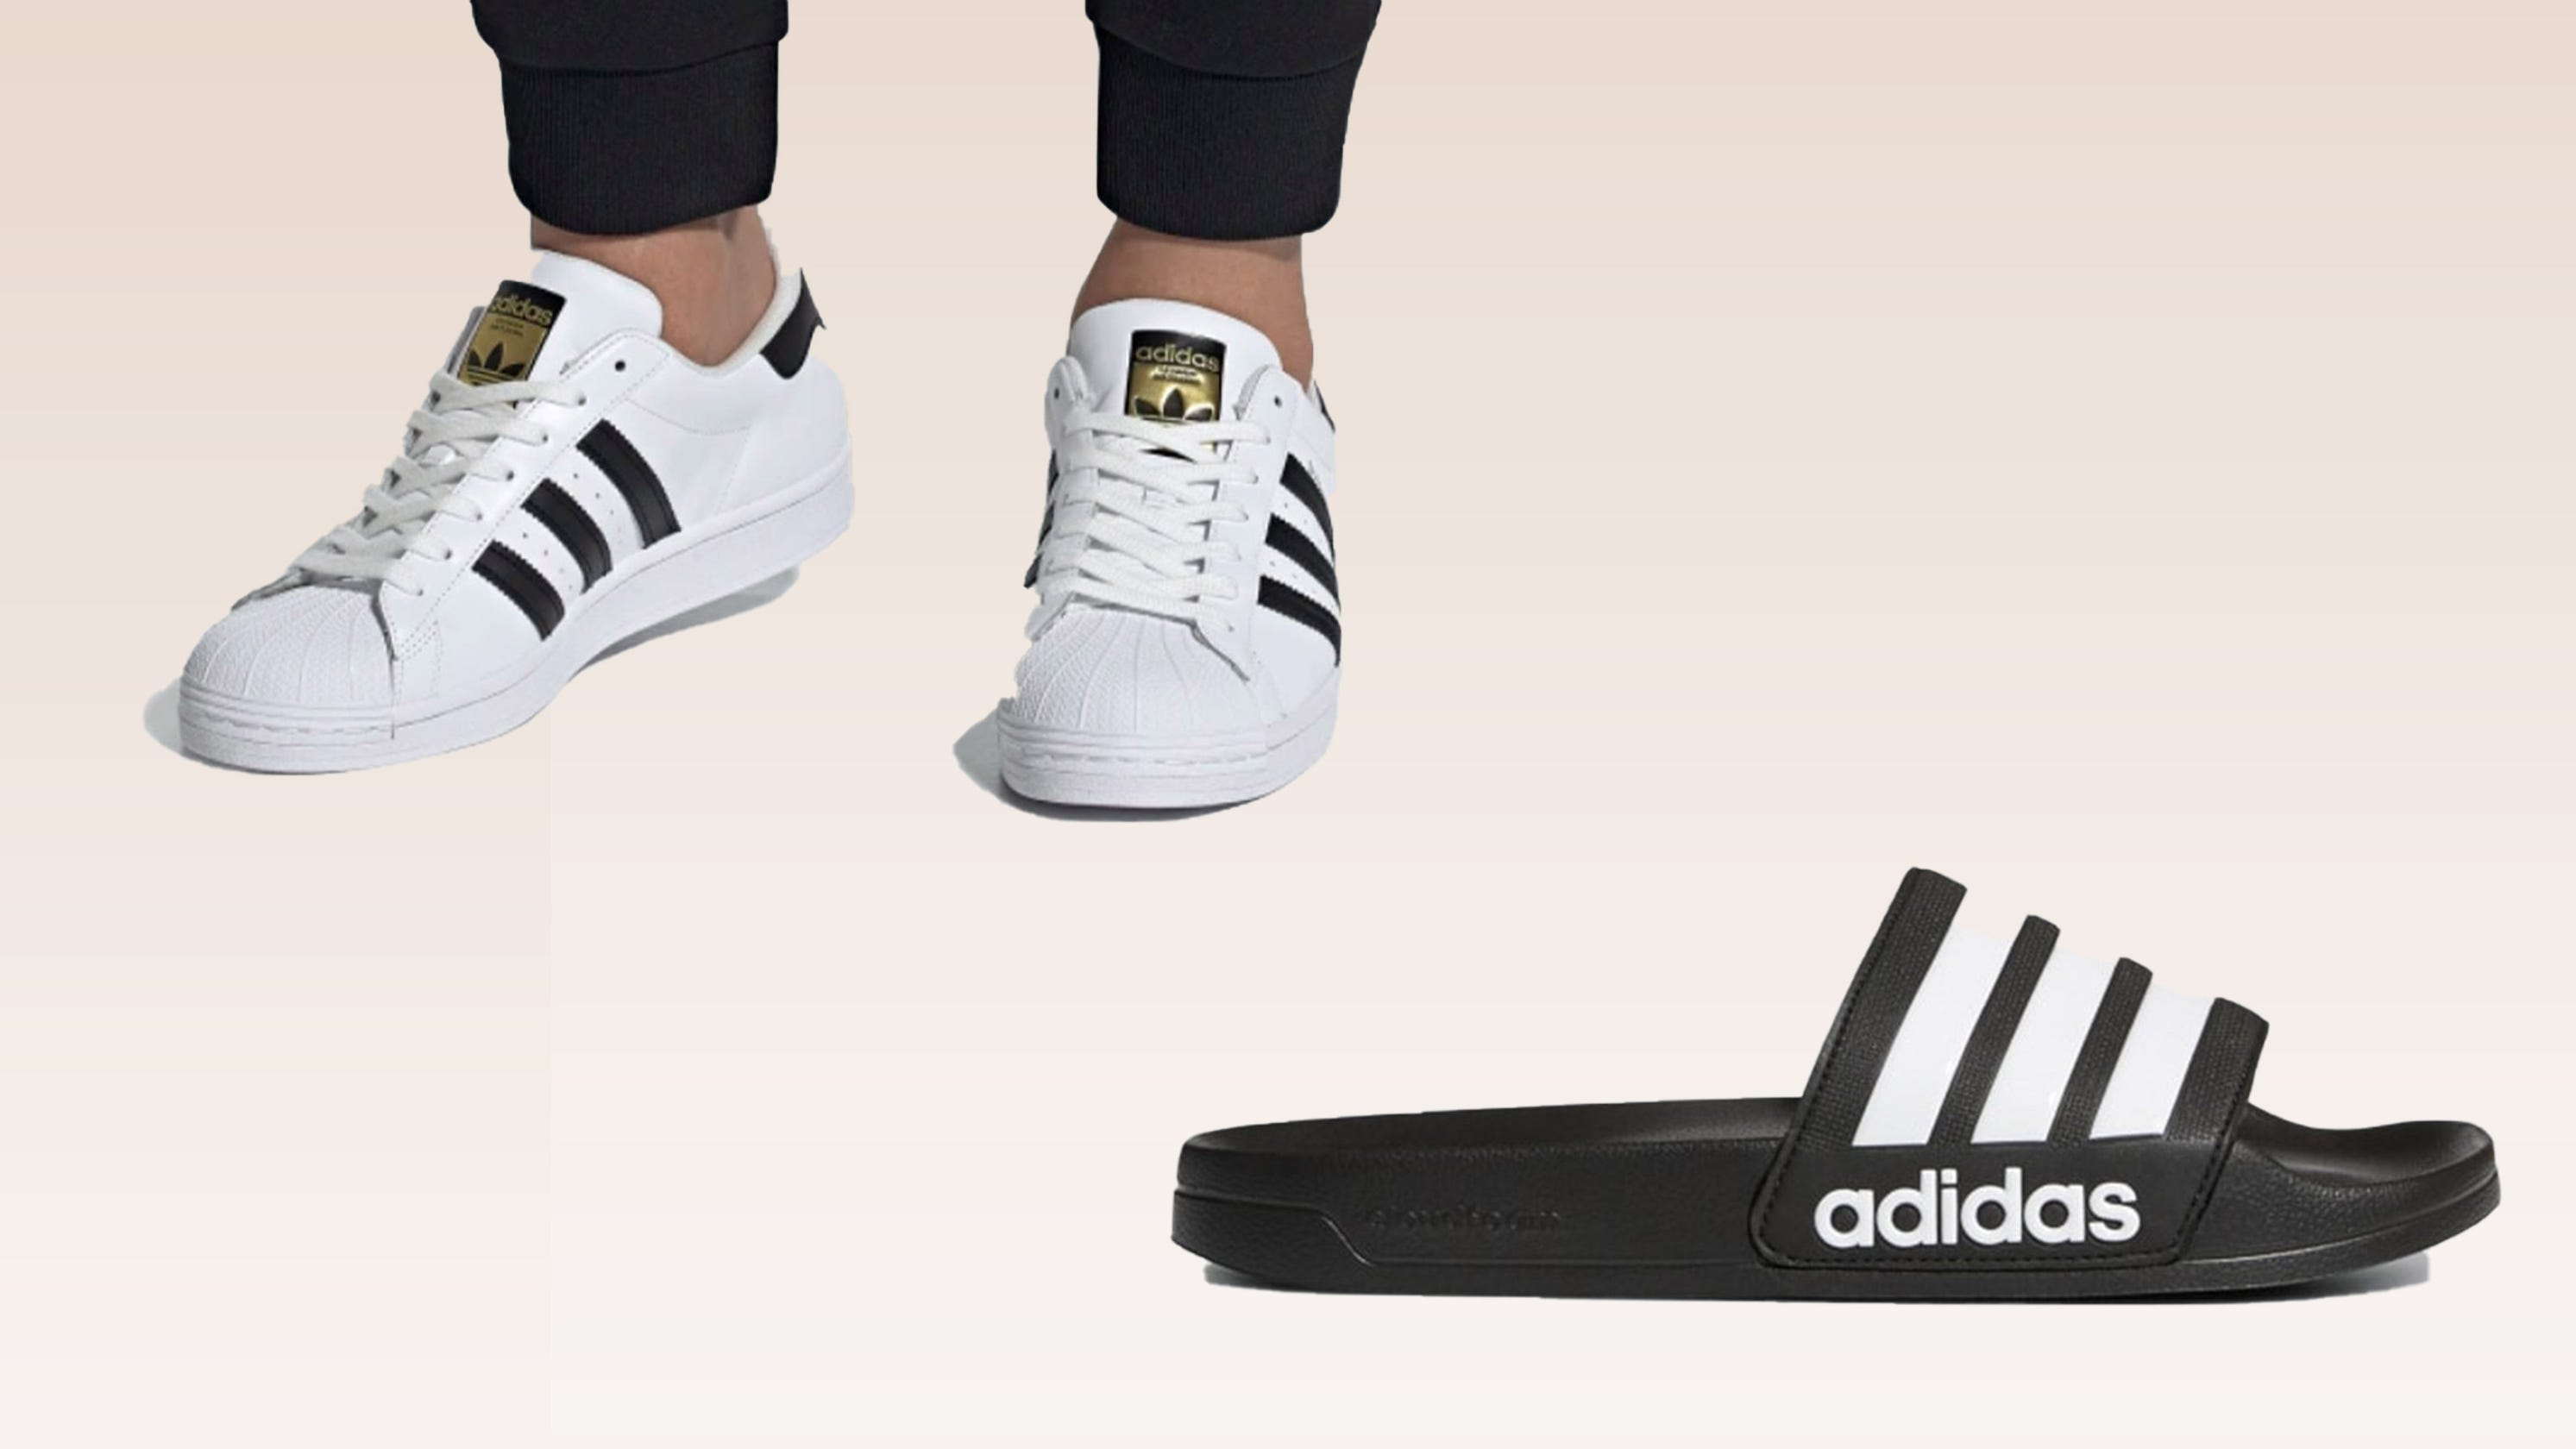 river pea consumption  Adidas sale: Save on top-rated shoes and apparel